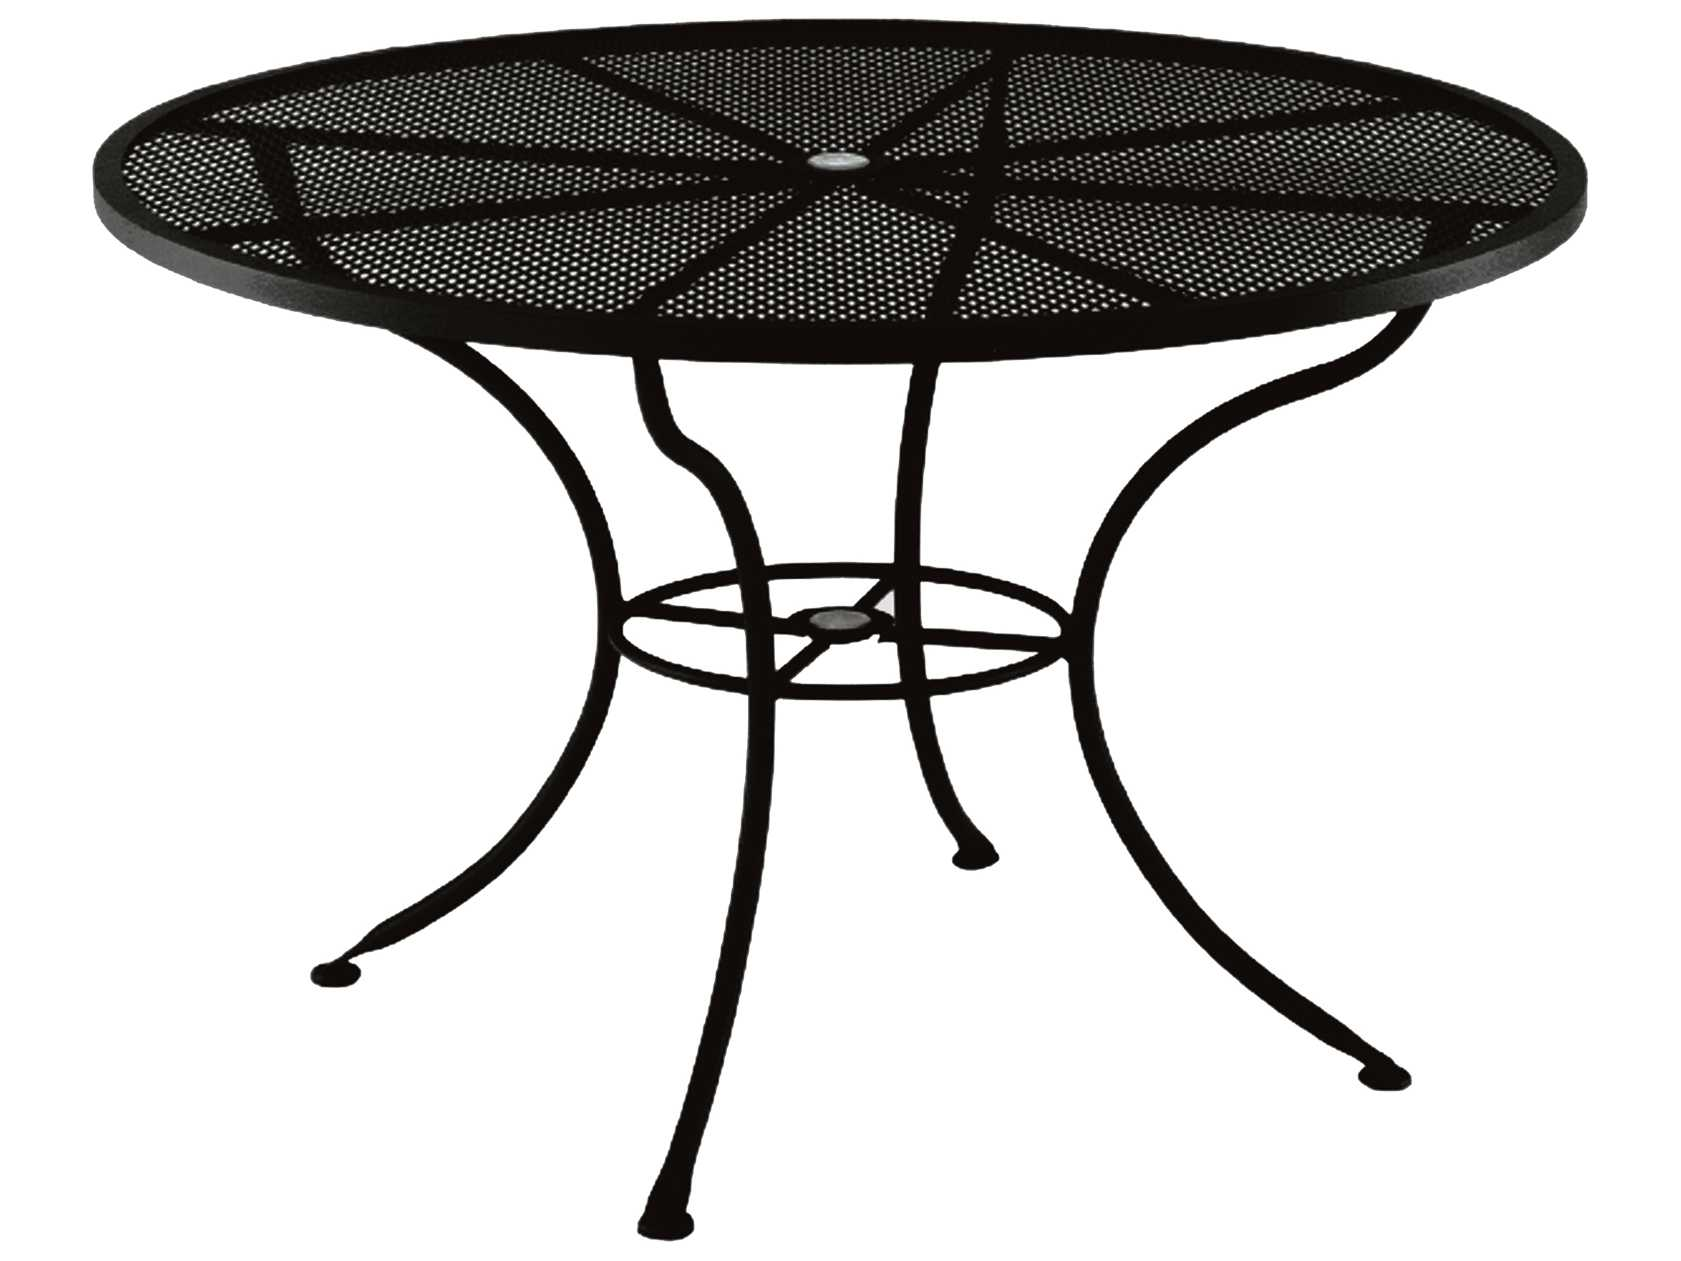 ow lee mesh wrought iron 60 round dining table with umbrella hole ow60mu. Black Bedroom Furniture Sets. Home Design Ideas